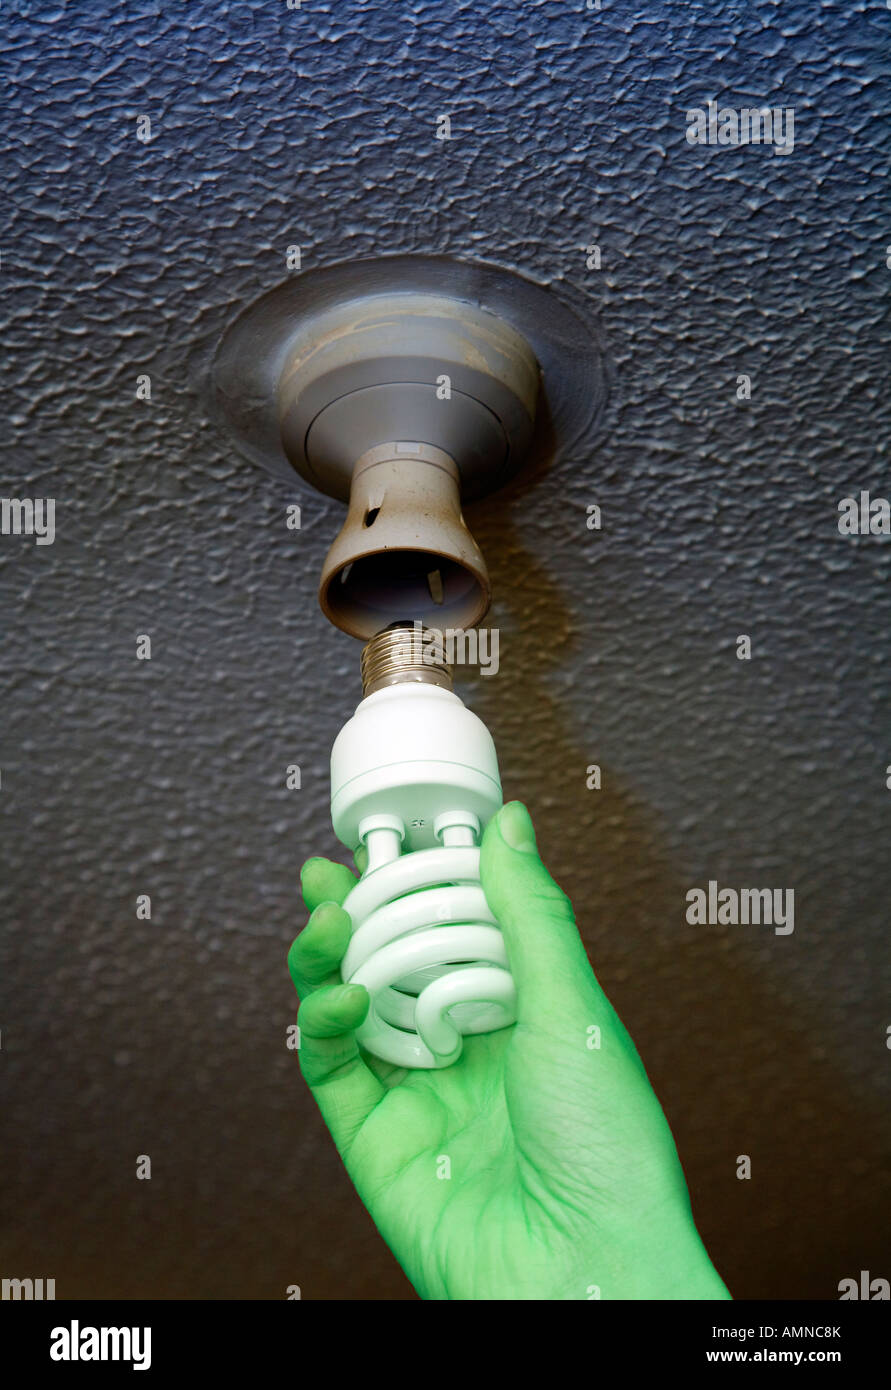 Green hand changing to an energy efficient bulb in ceiling - Stock Image